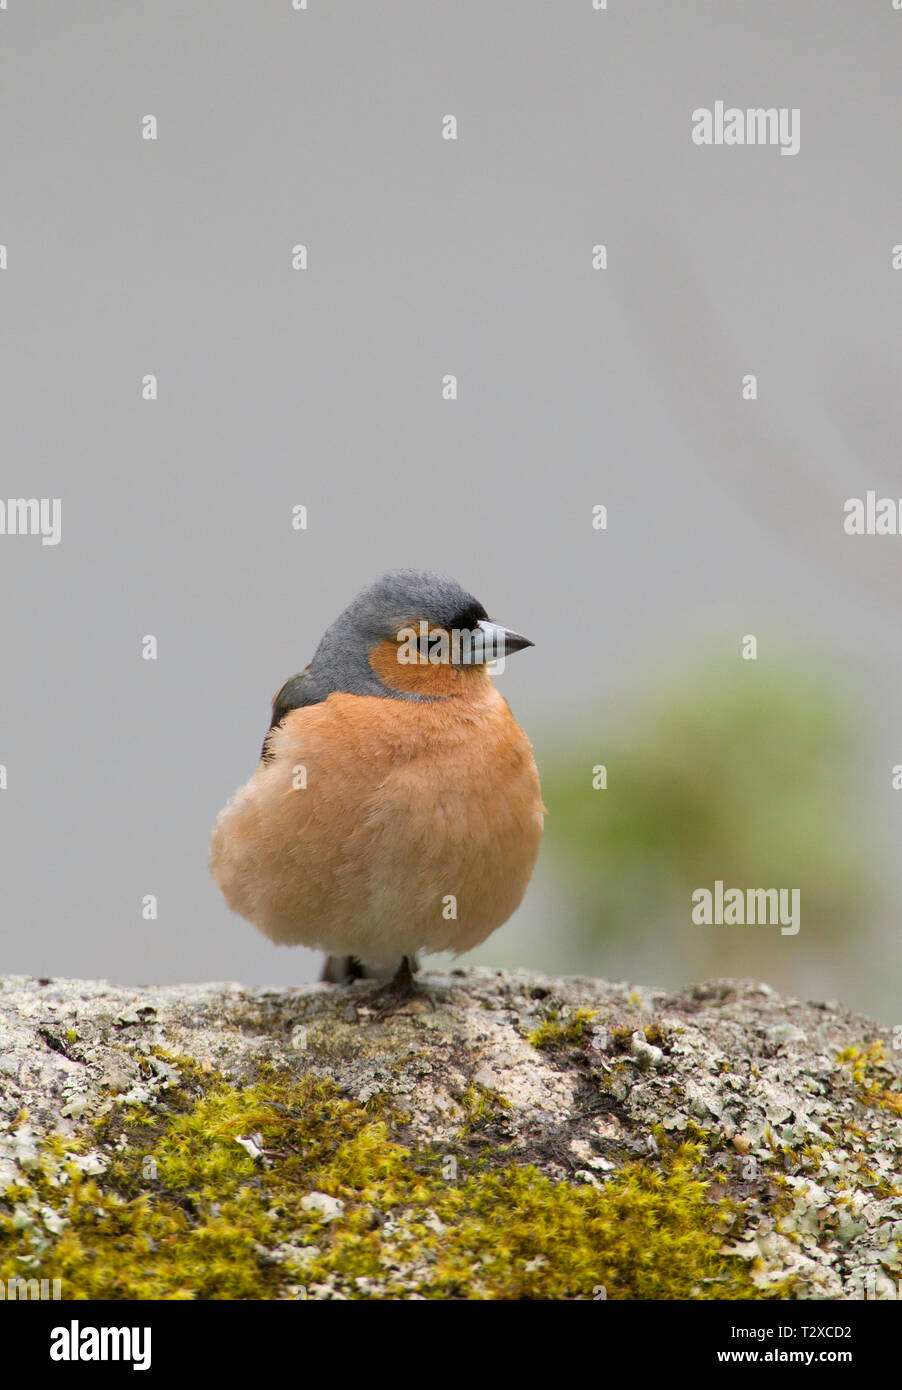 Chaffinch, Fringilla coelebs, single adult male perched on moss covered rock. Aviemore, Scotland, UK. - Stock Image